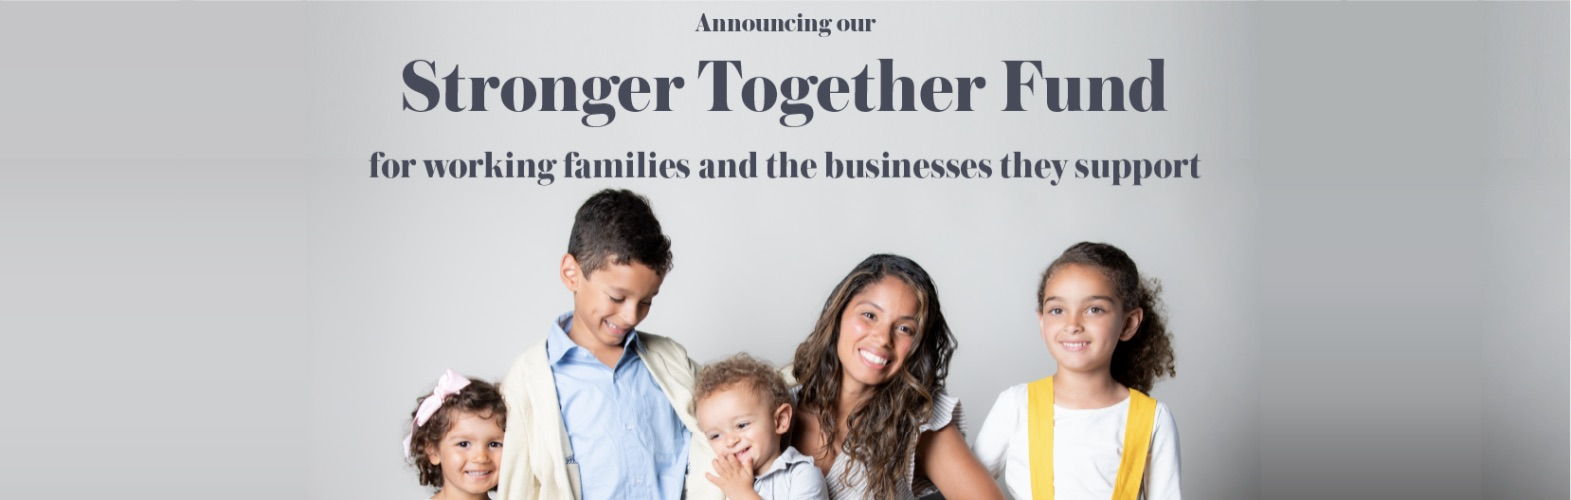 Stronger Together Fund: Announcing our $500K Commitment to Moms & Businesses